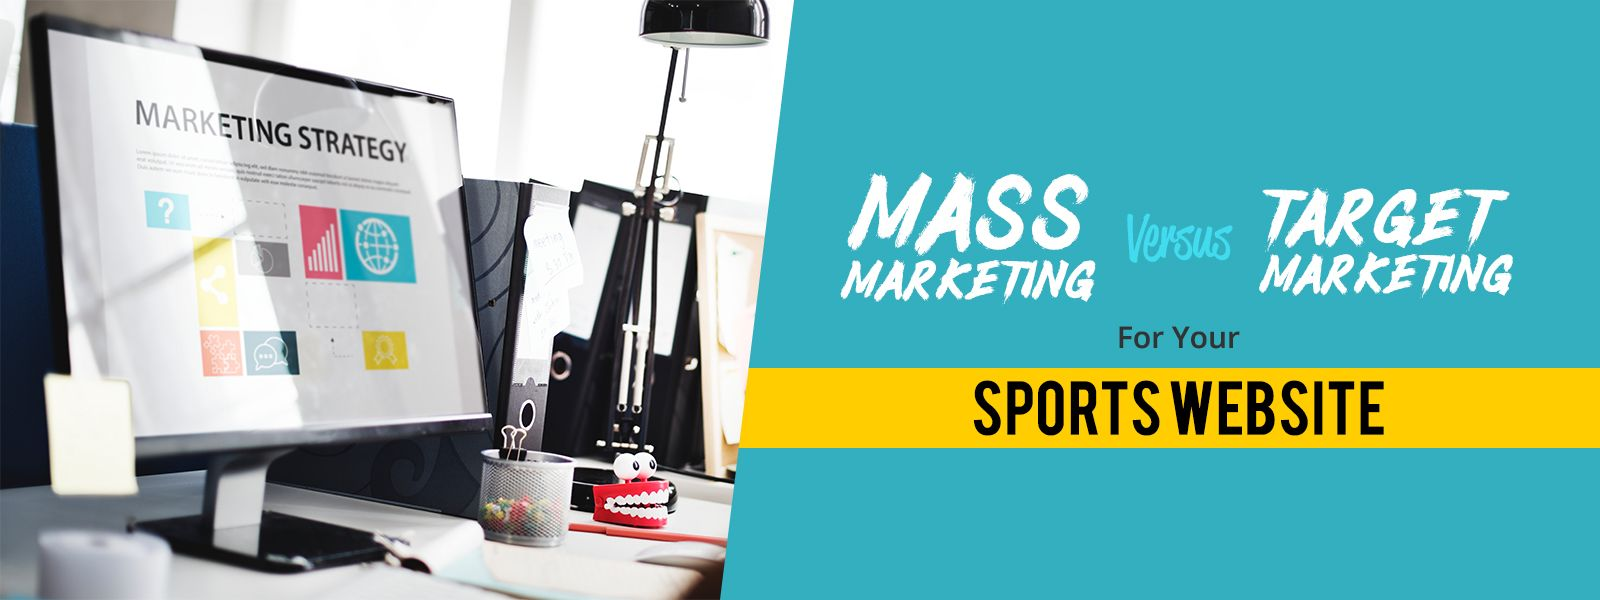 Mass Marketing vs Target Marketing For Your Sports Betting